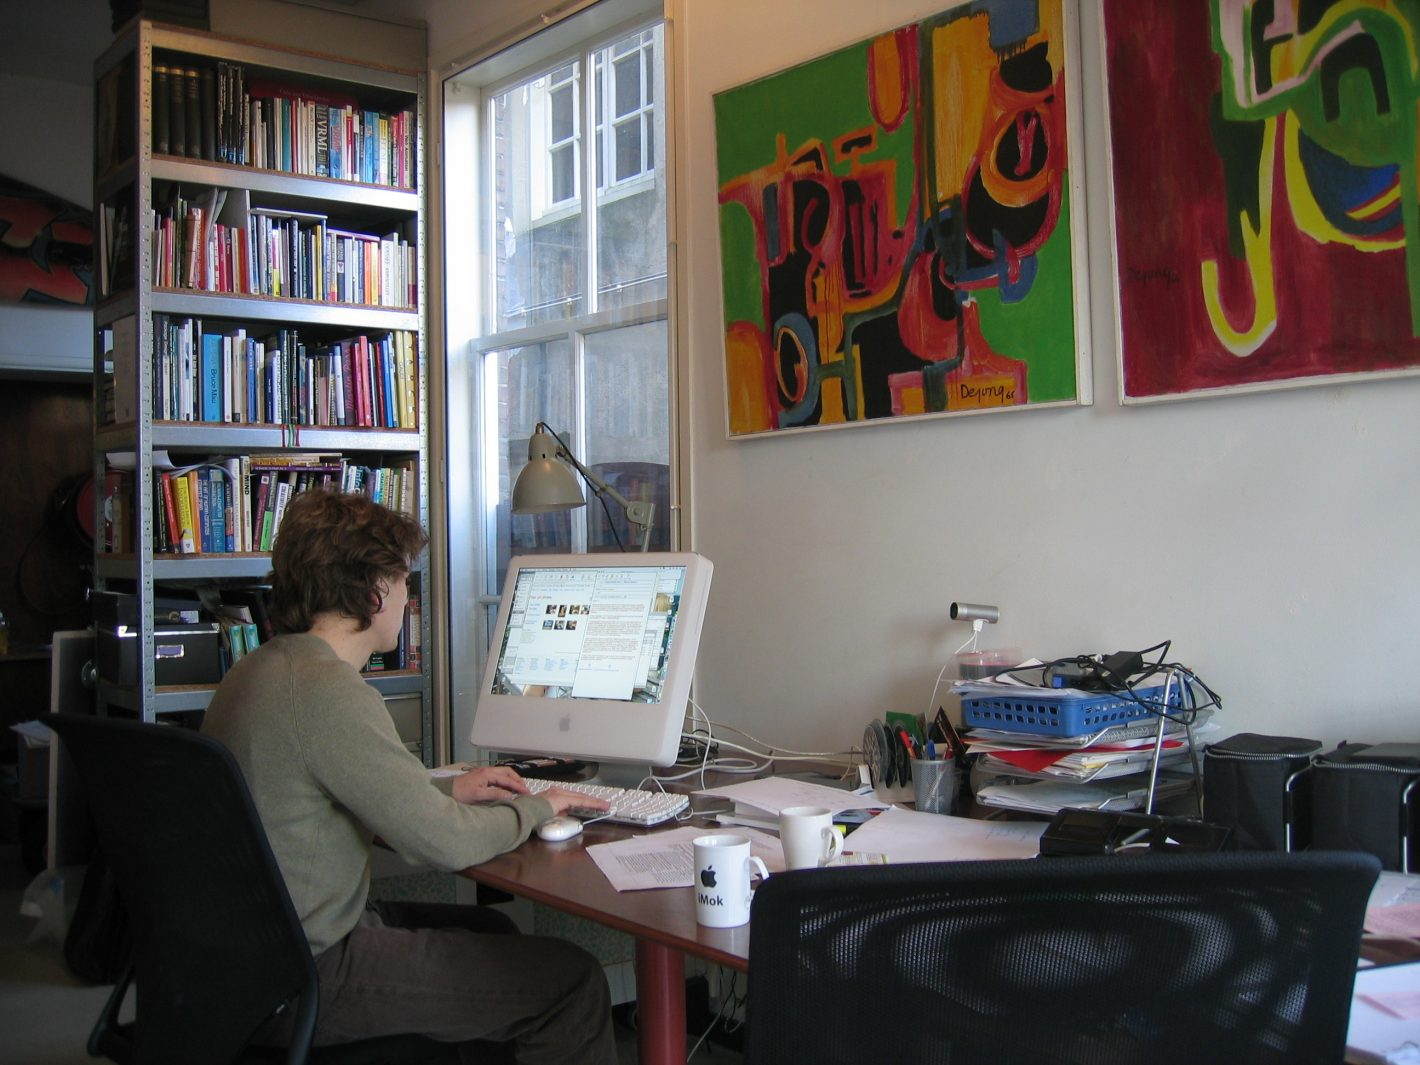 Working from Home IT Issues   Cyber Security   Firstline IT Oxford